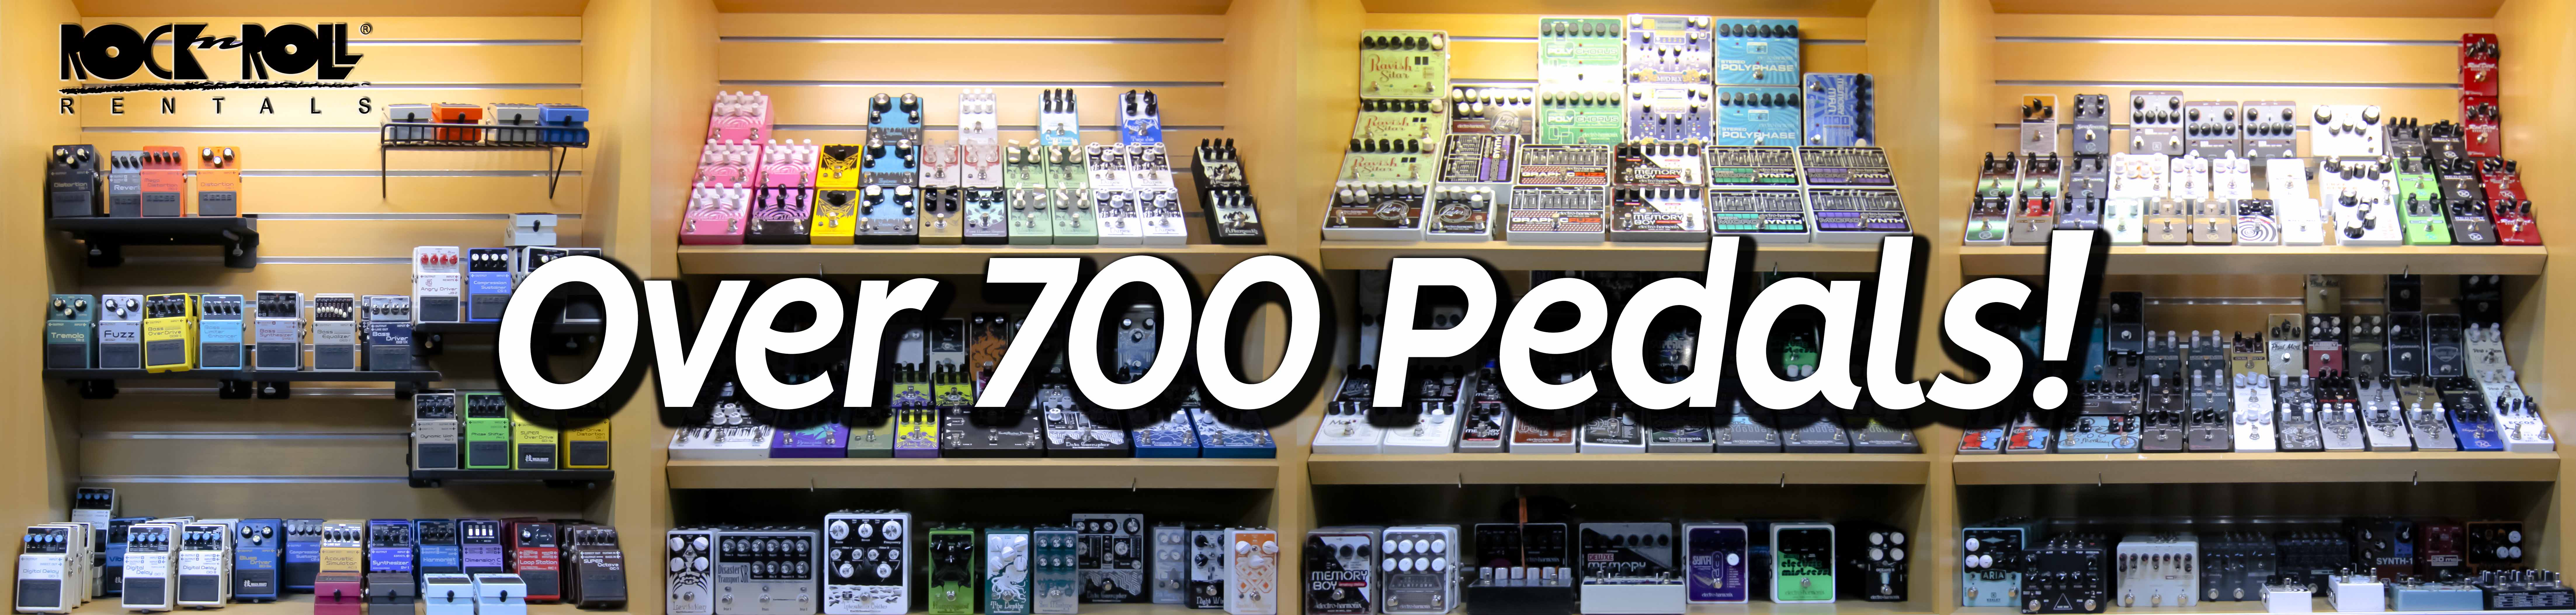 Browse over 700 FX Pedals